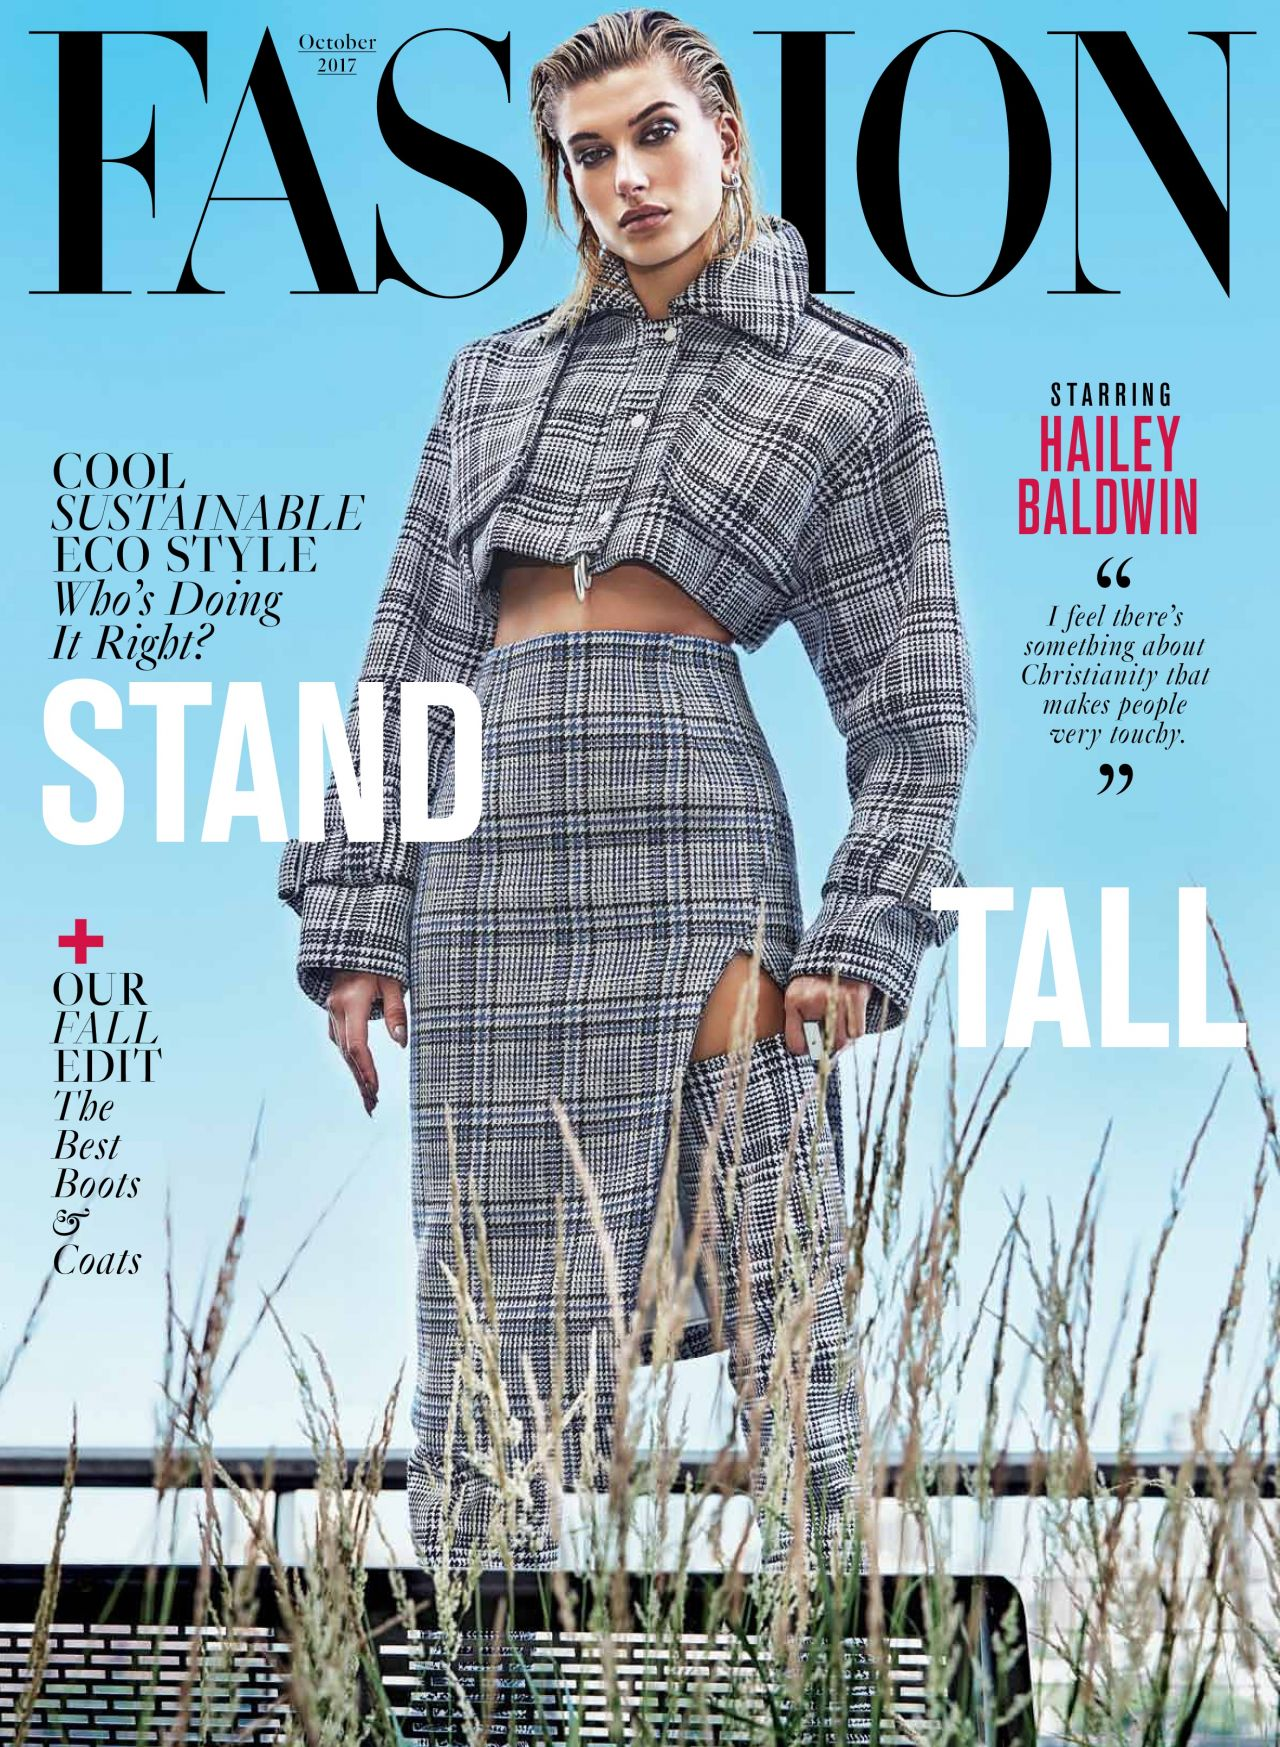 Fashion Magazine October 2017 Issue